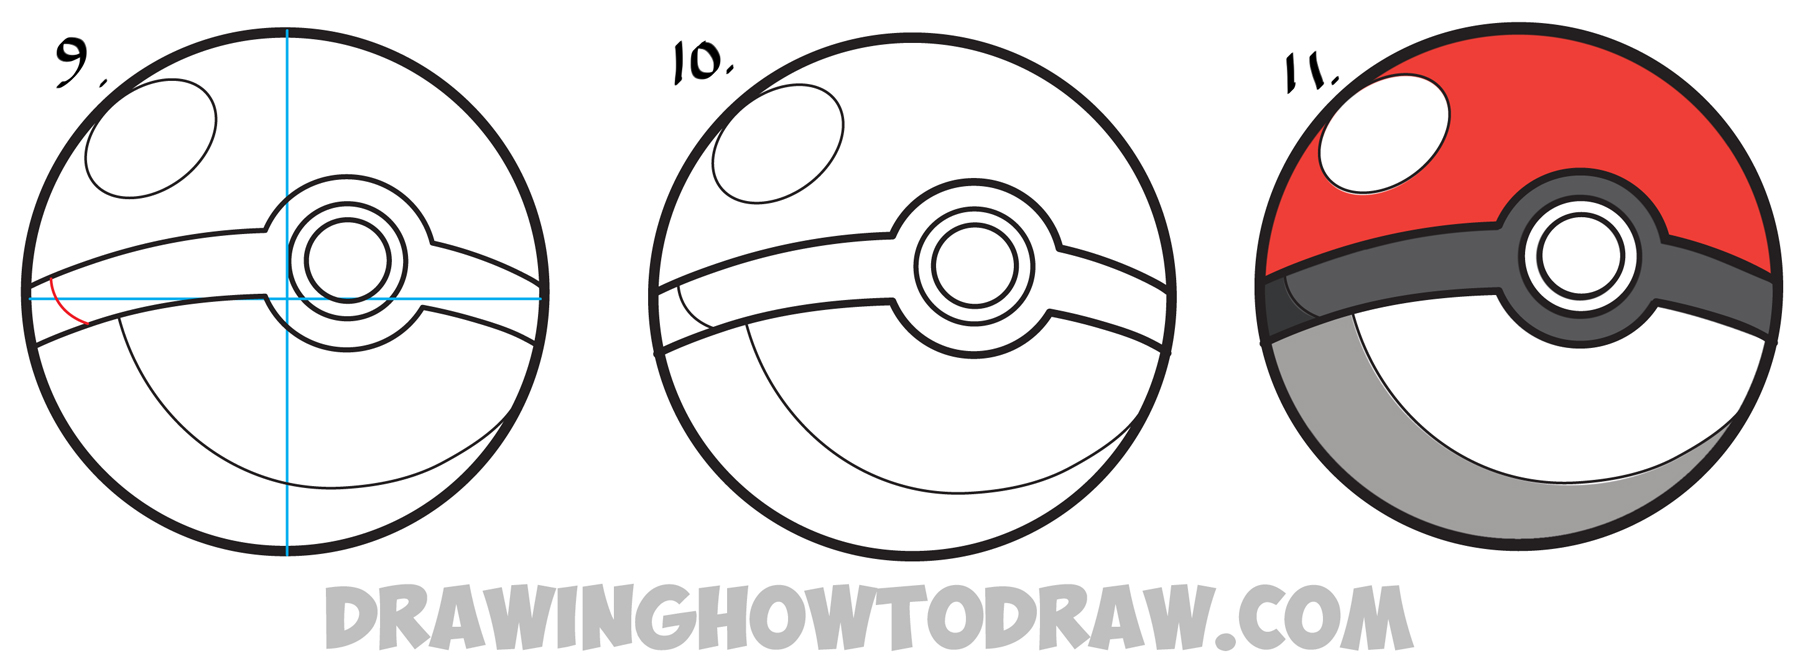 1800x666 How To Draw A Pokeball From Pokemon